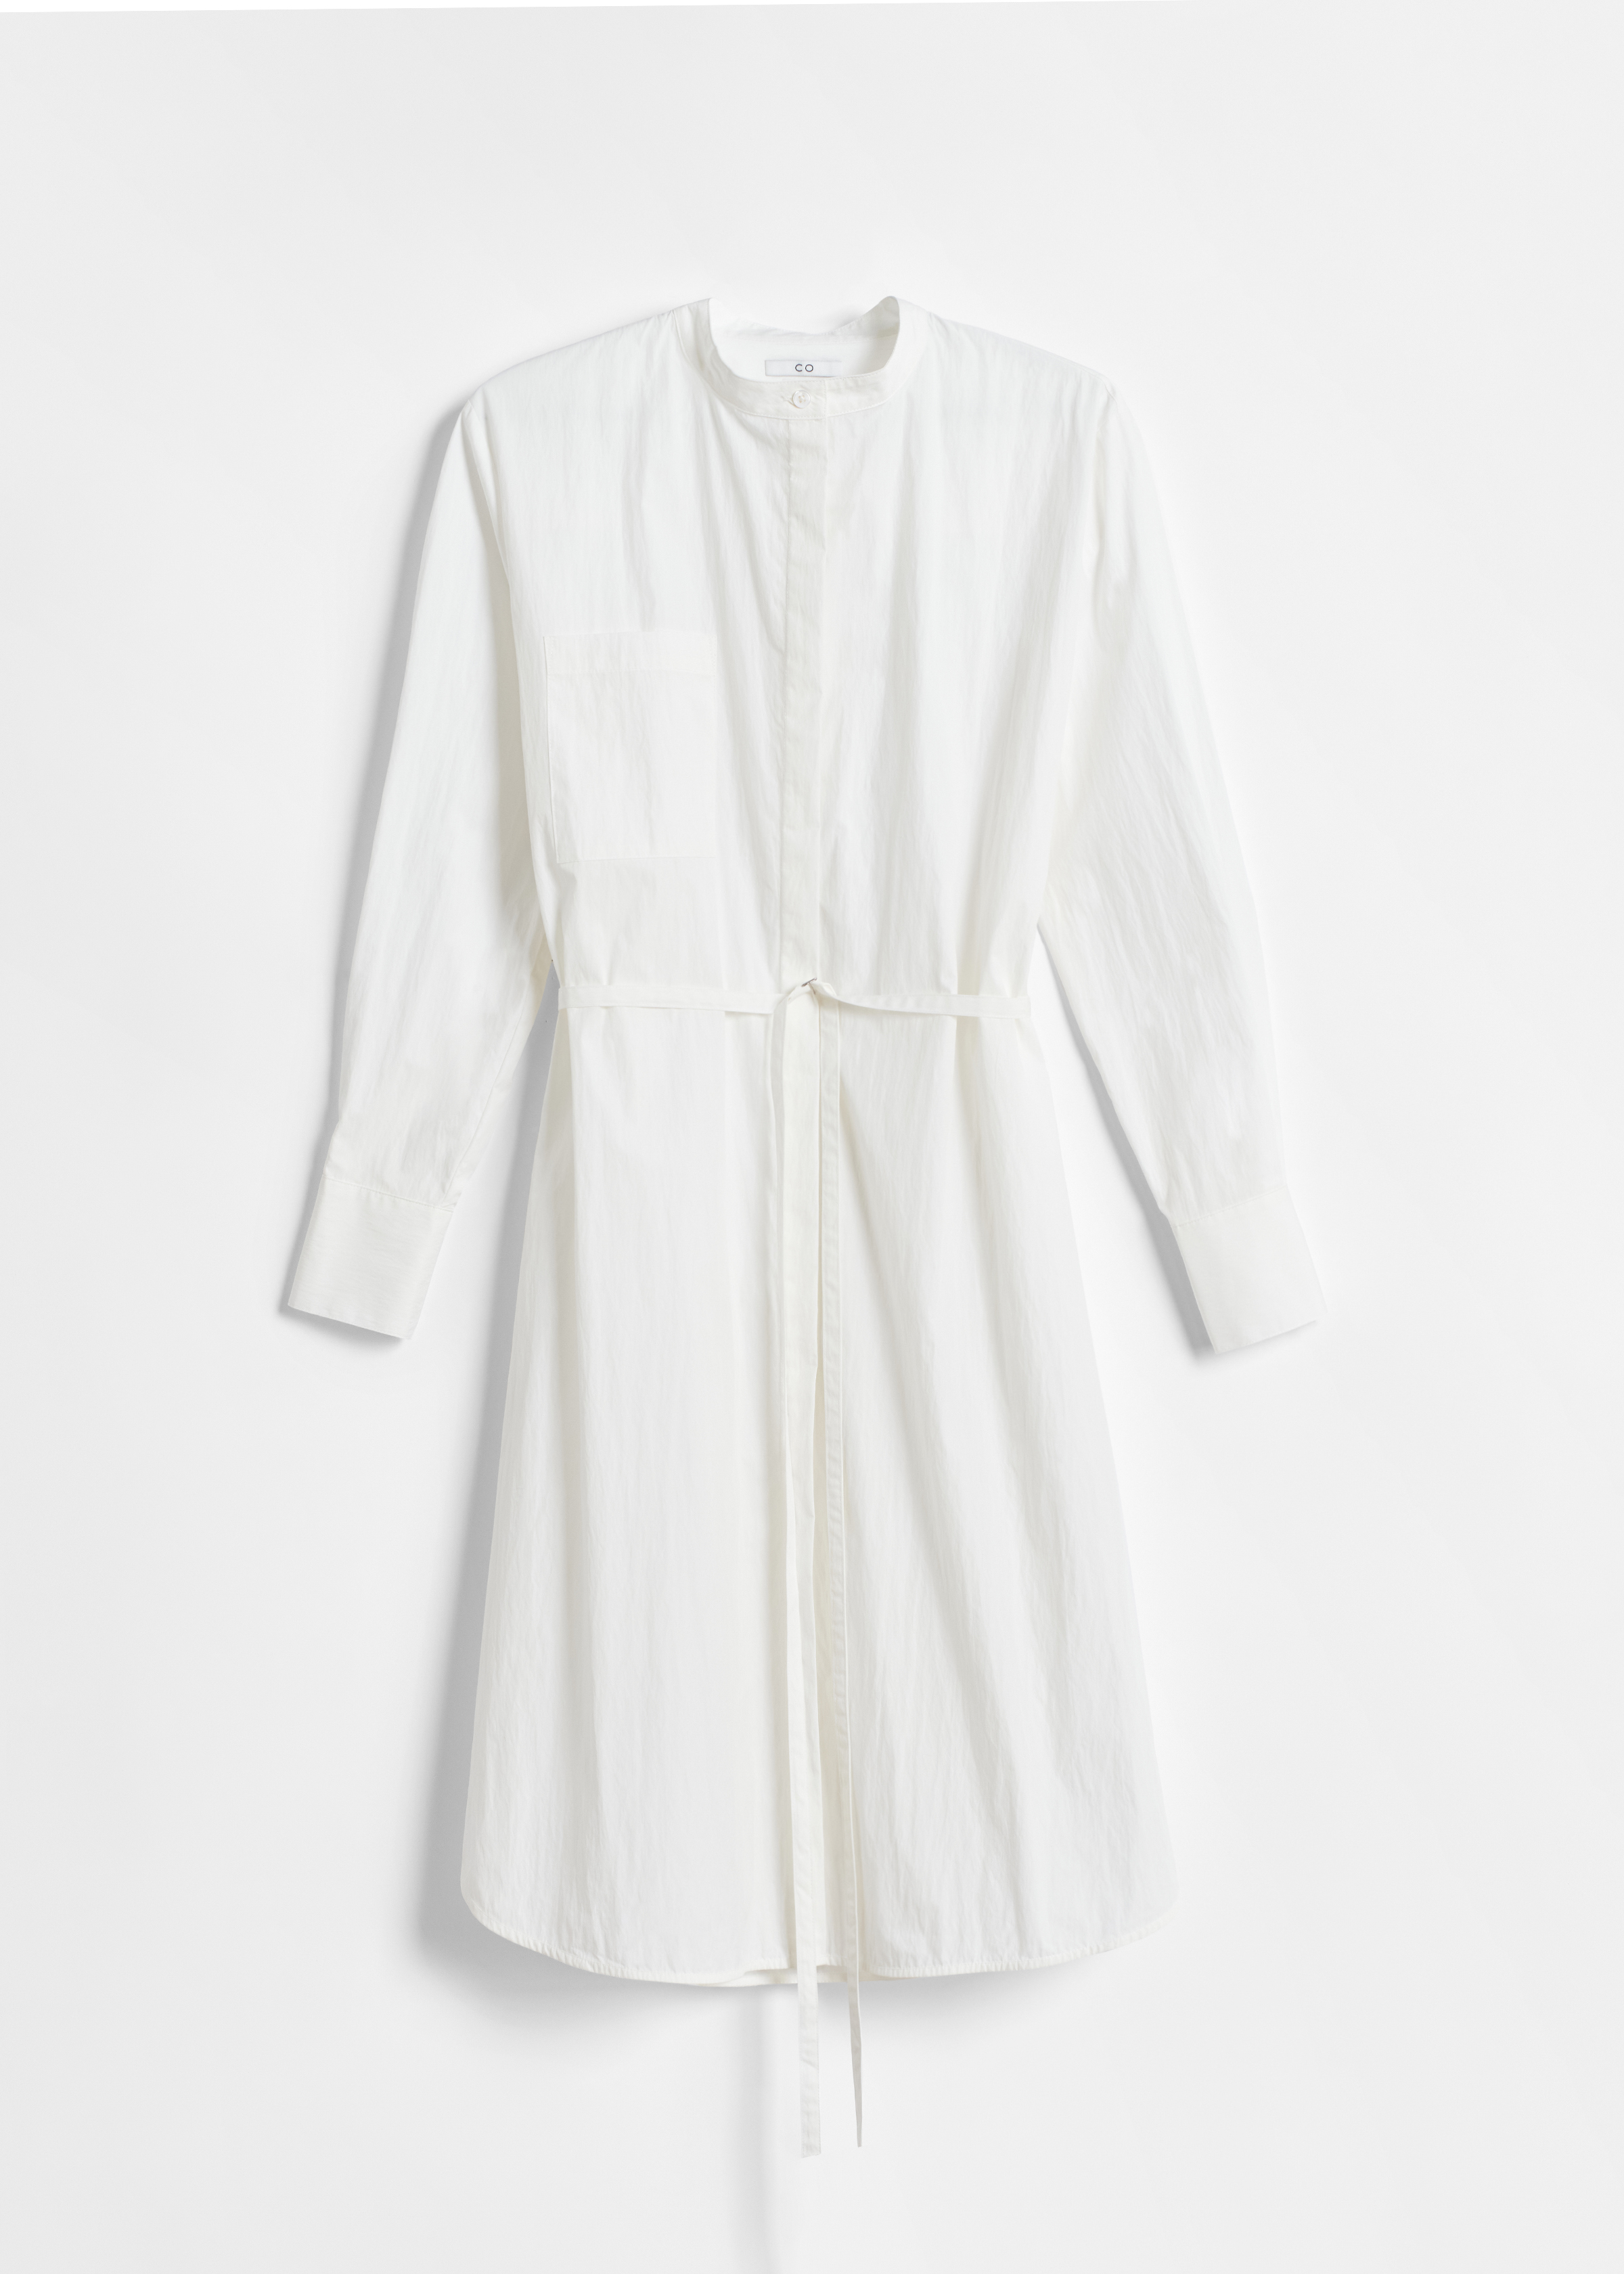 CO - Belted Long Sleeve Tunic in Cotton - White